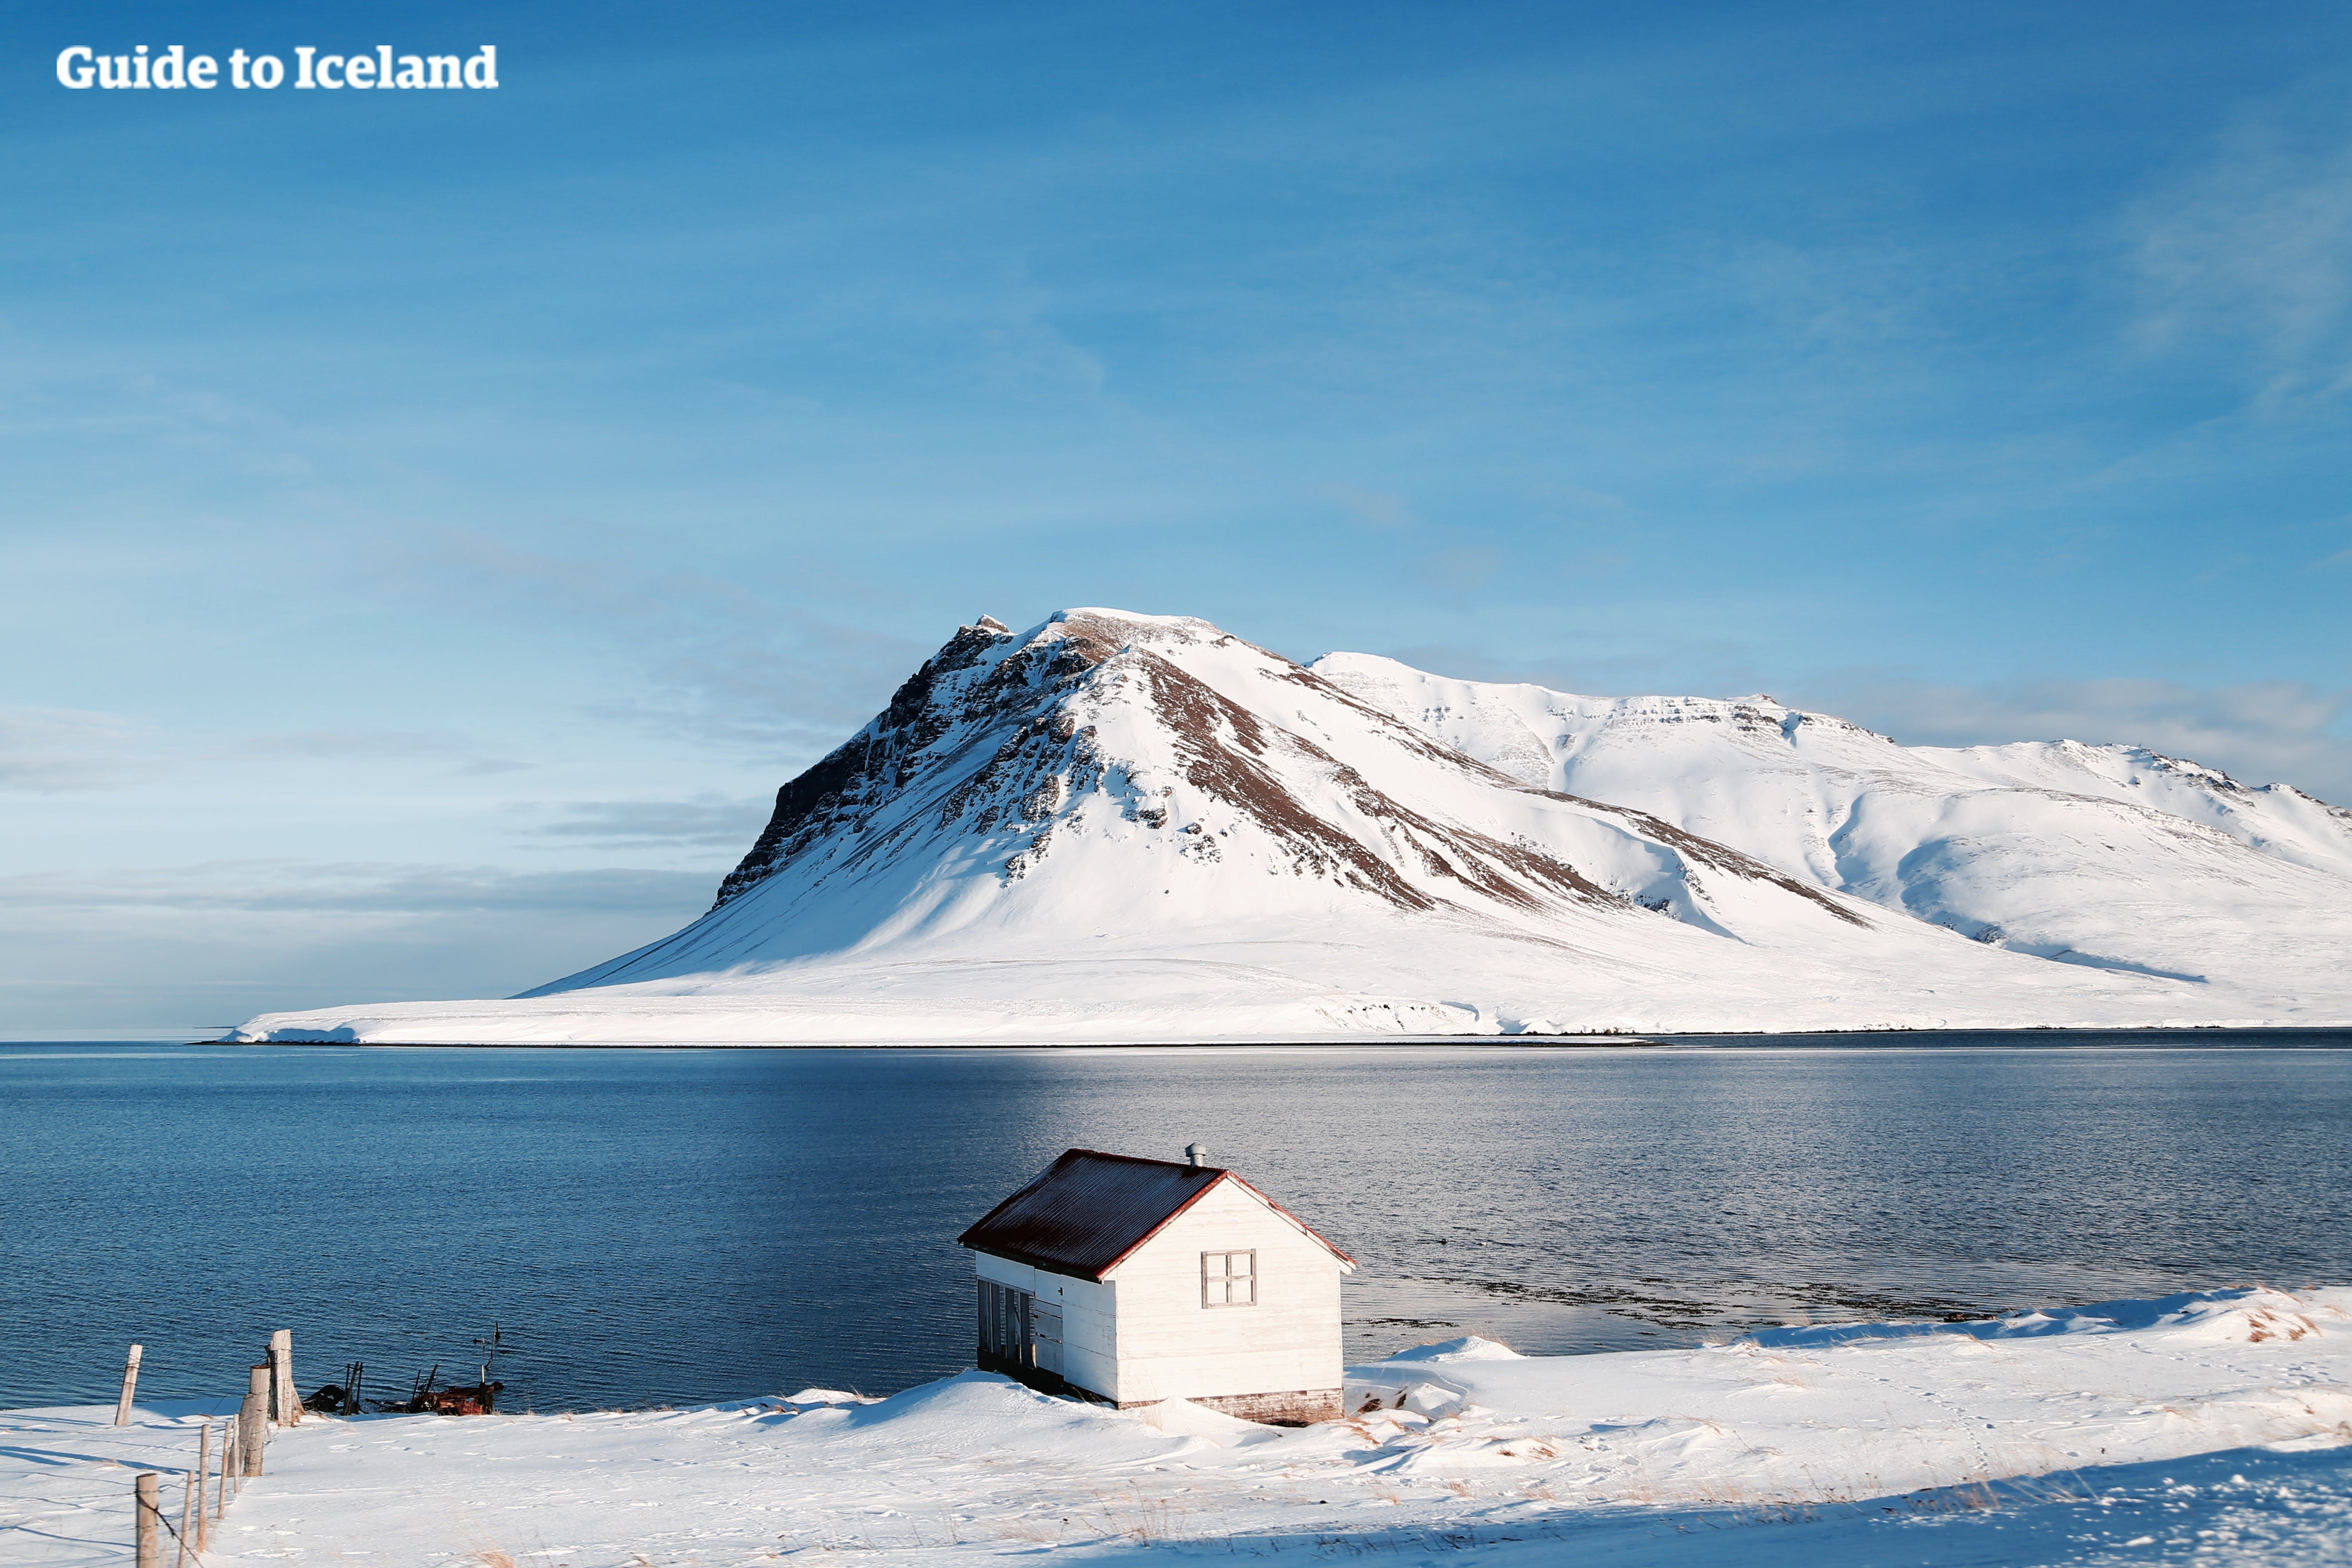 A house on the Snaefellesnes Peninsula overlooks a stunning seascape.